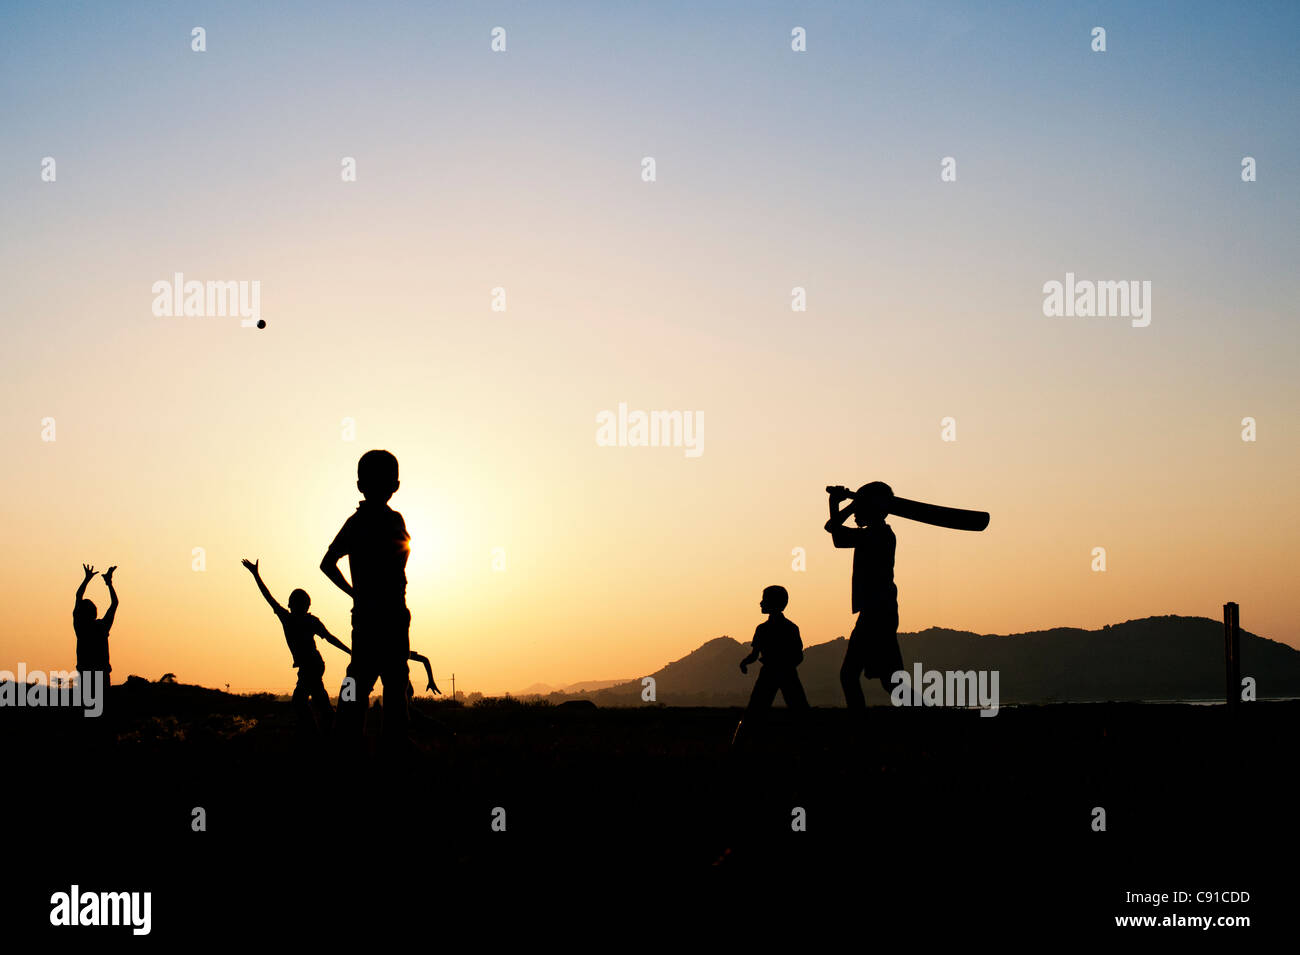 Silhouette of young Indian boys playing cricket against a sunset background - Stock Image